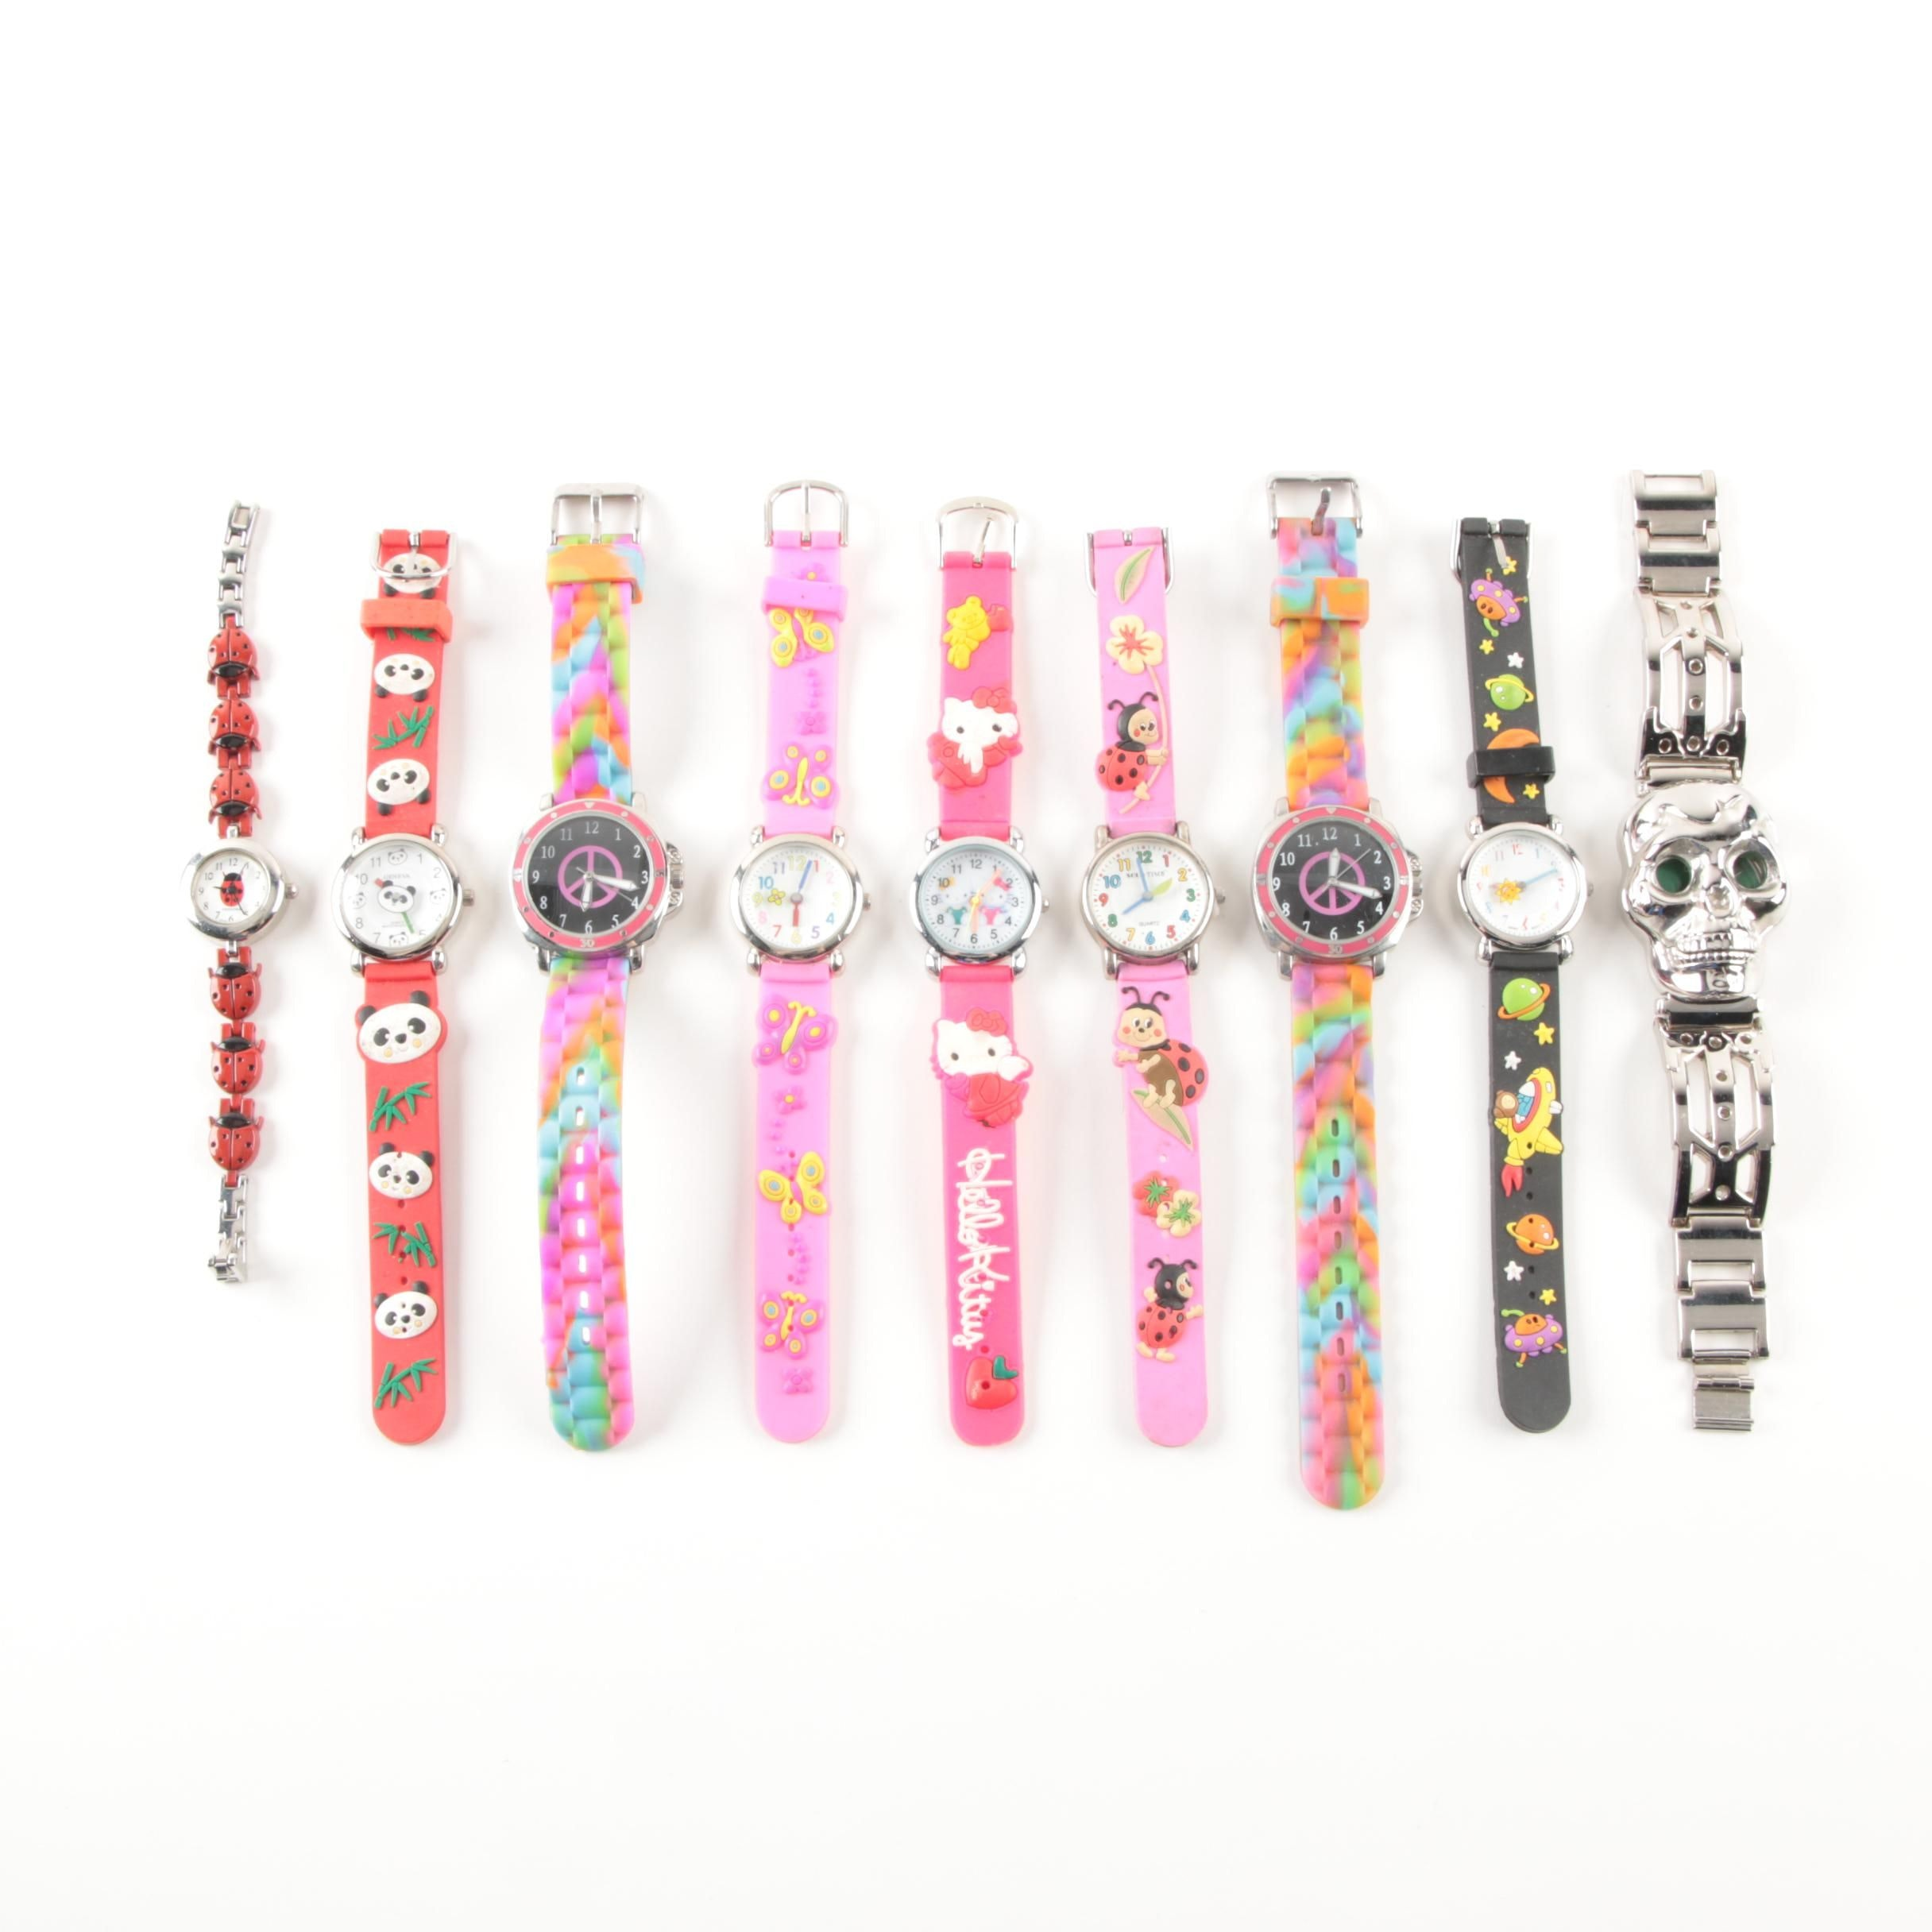 Themed Wristwatches Including Hello Kitty, Lady Bugs, and Peace Signs